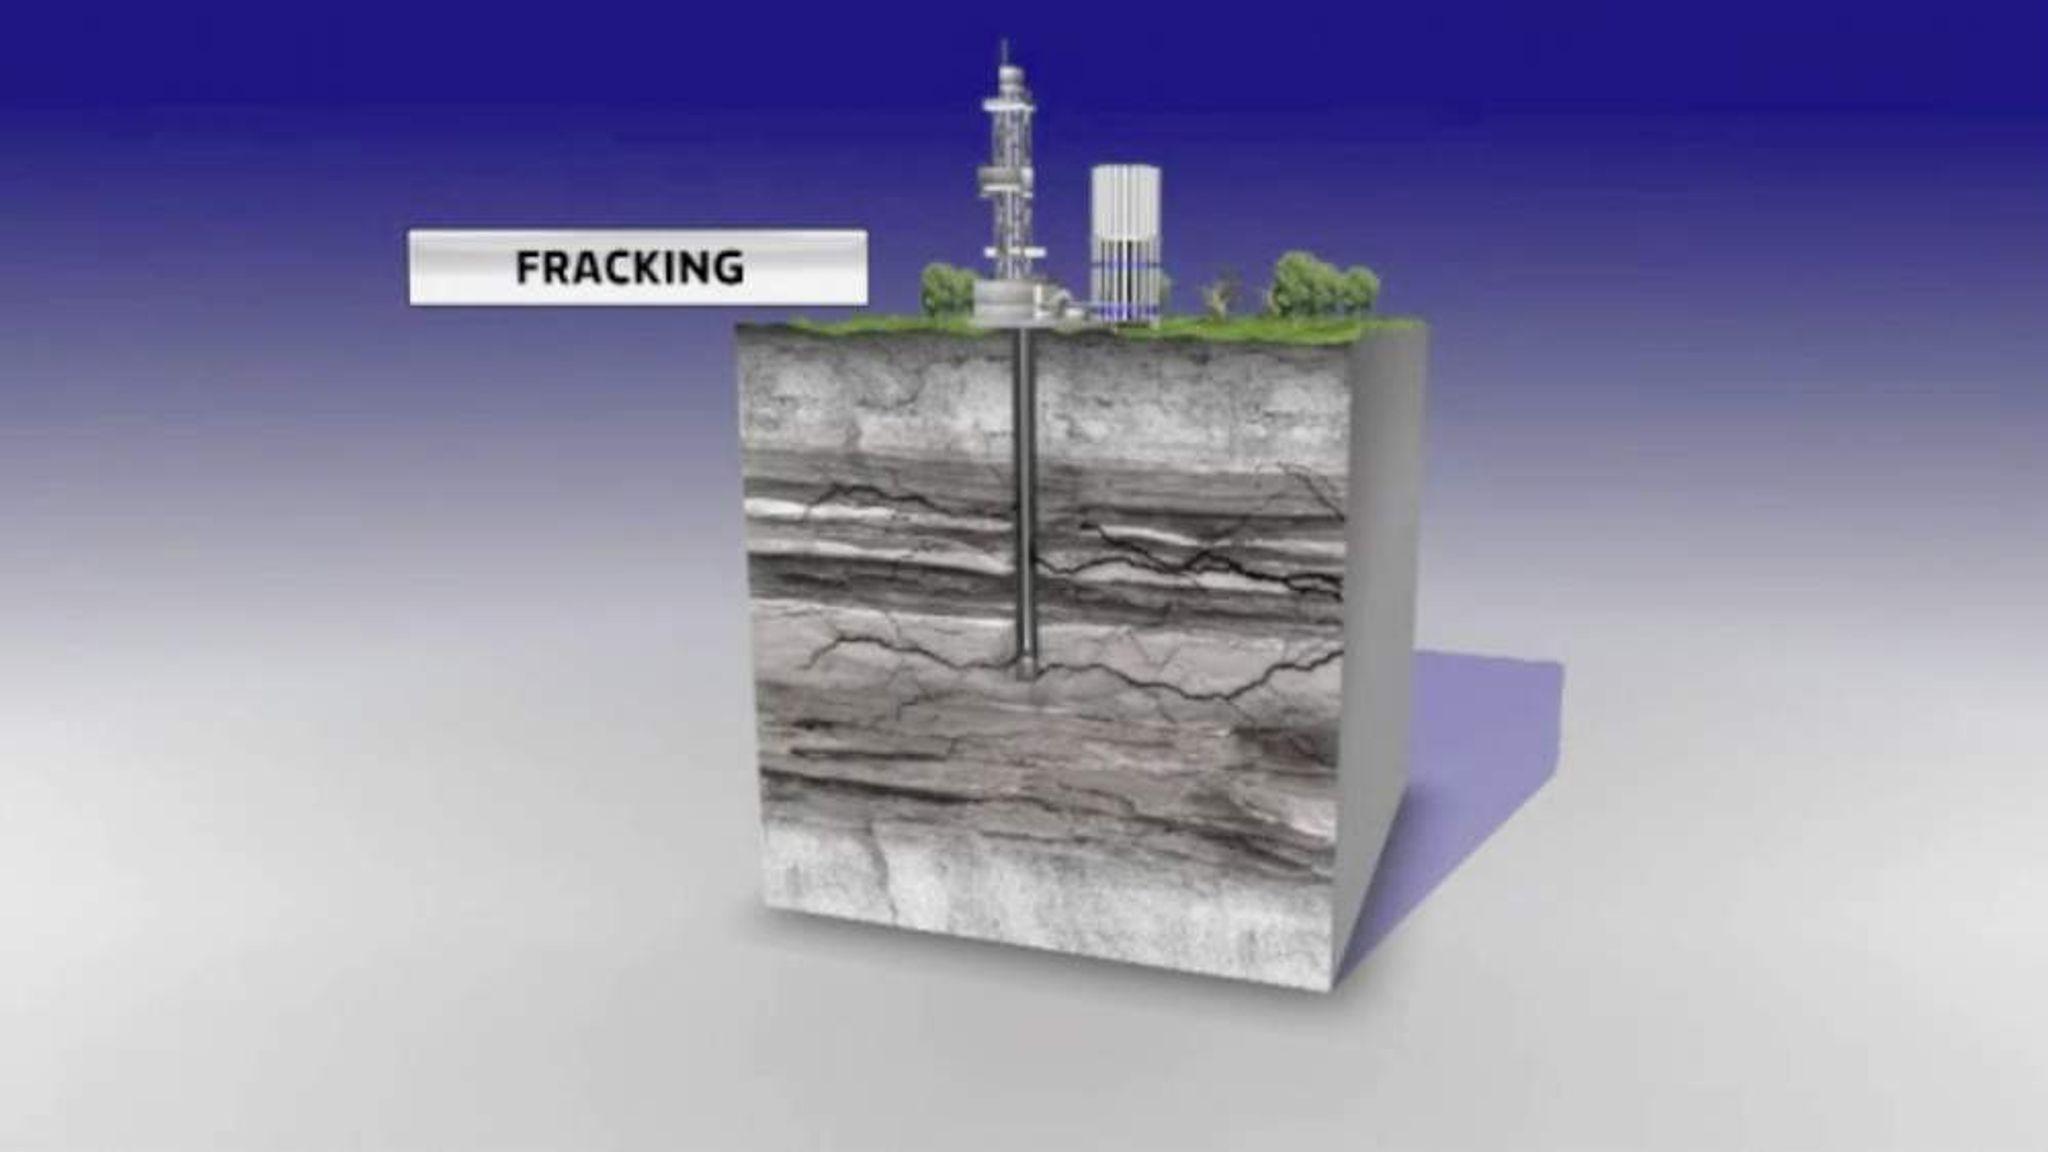 ethics of fracking 235 7 ethical decision making and behavior as we practice resolving dilemmas we find ethics to be less a goal than a pathway, less a destination than a trip, less an inoculation.